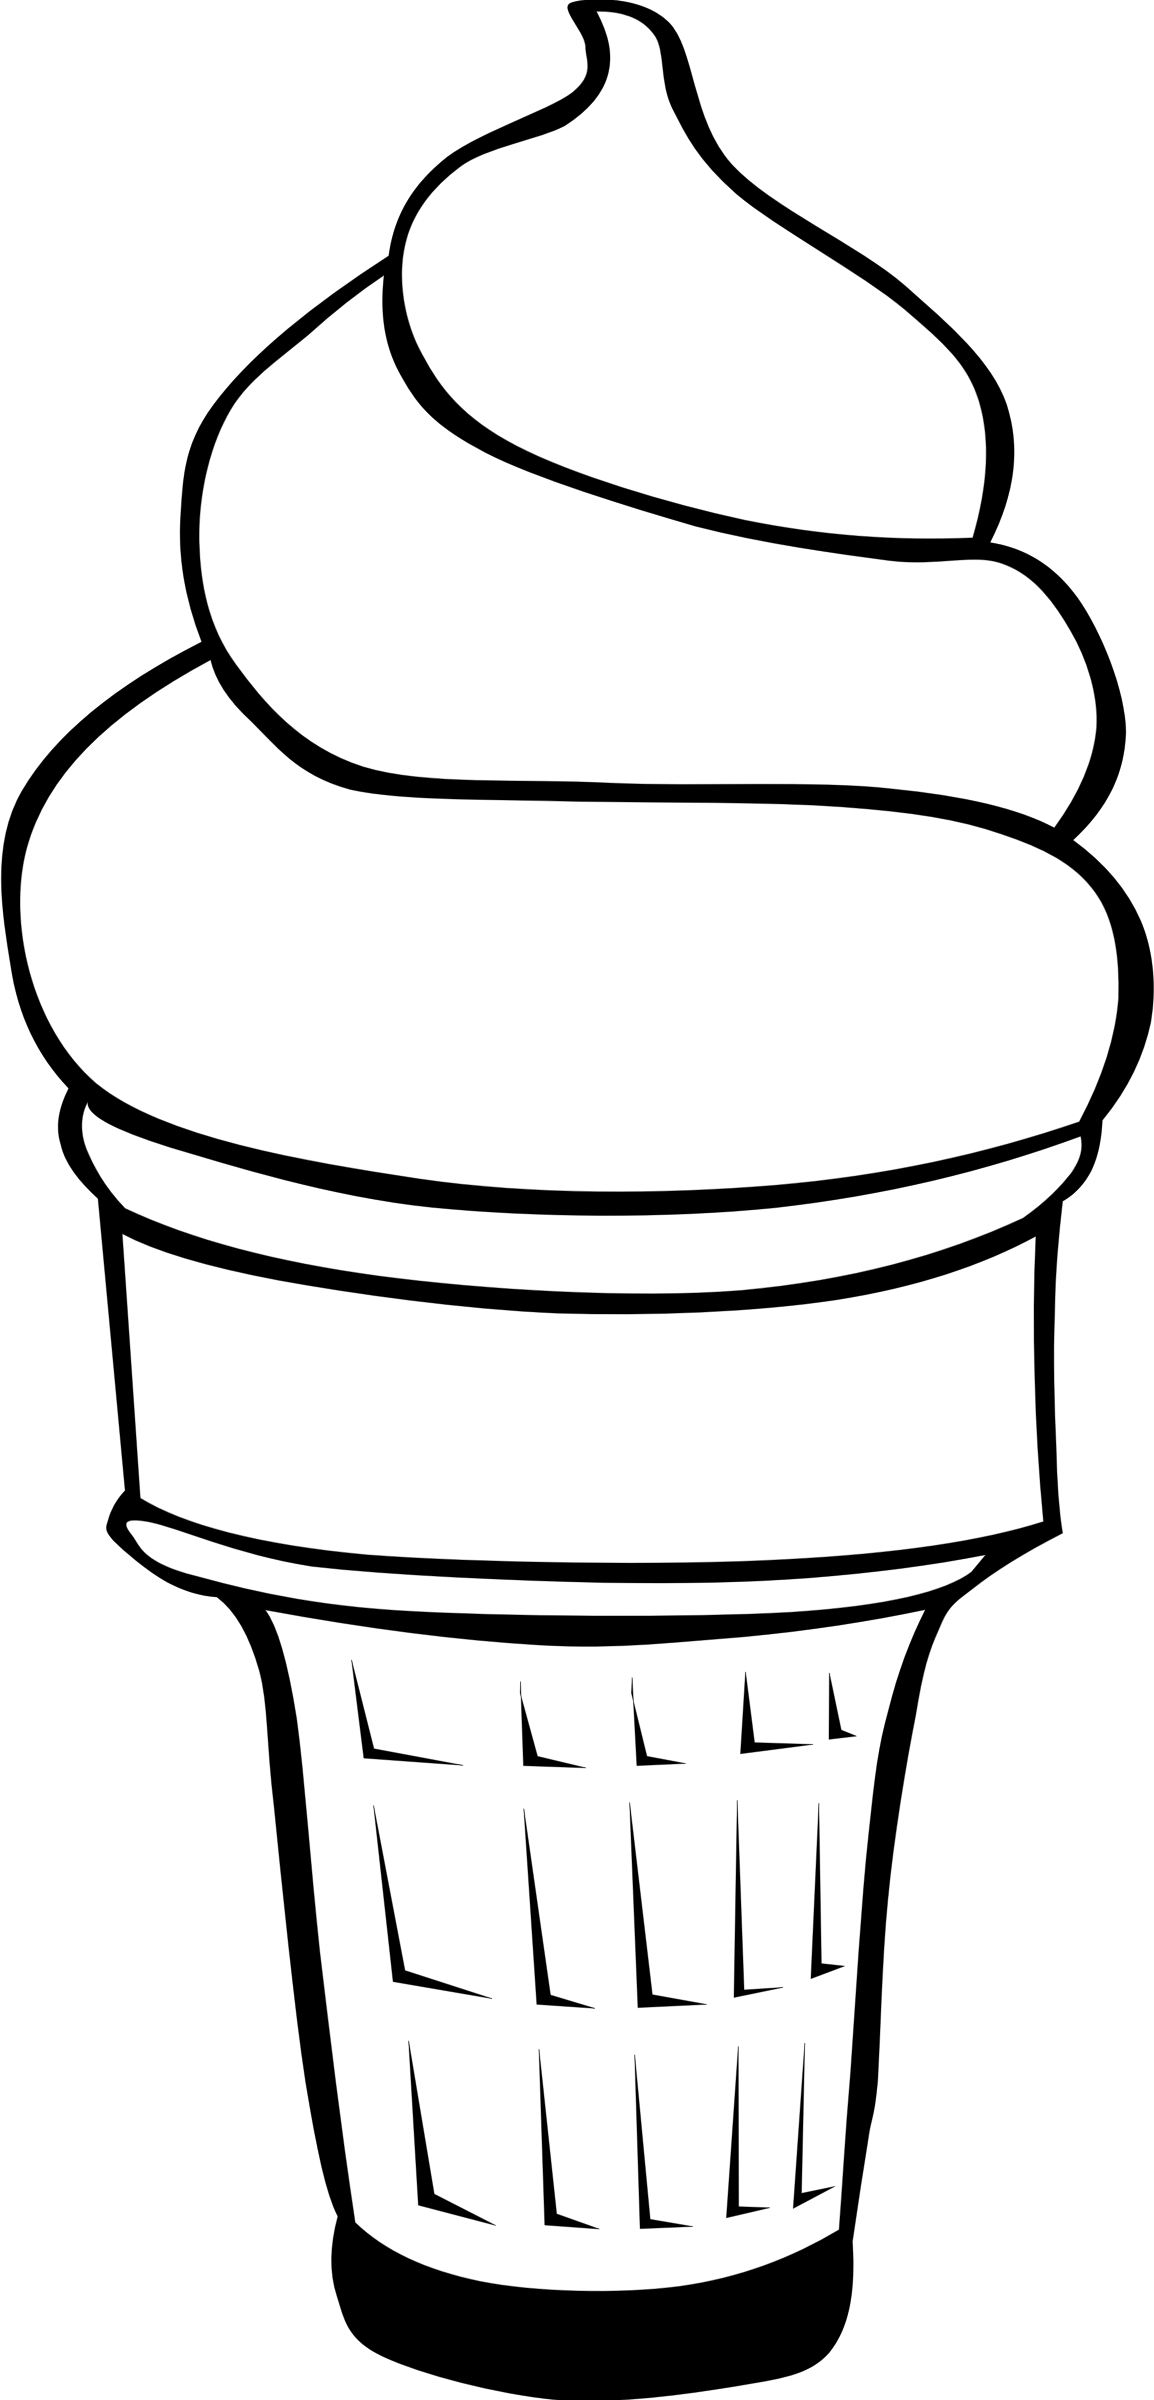 700x933 Appealing Ice Cream Coloring Pages 42 On Site With 5 1154x2400 Clipart